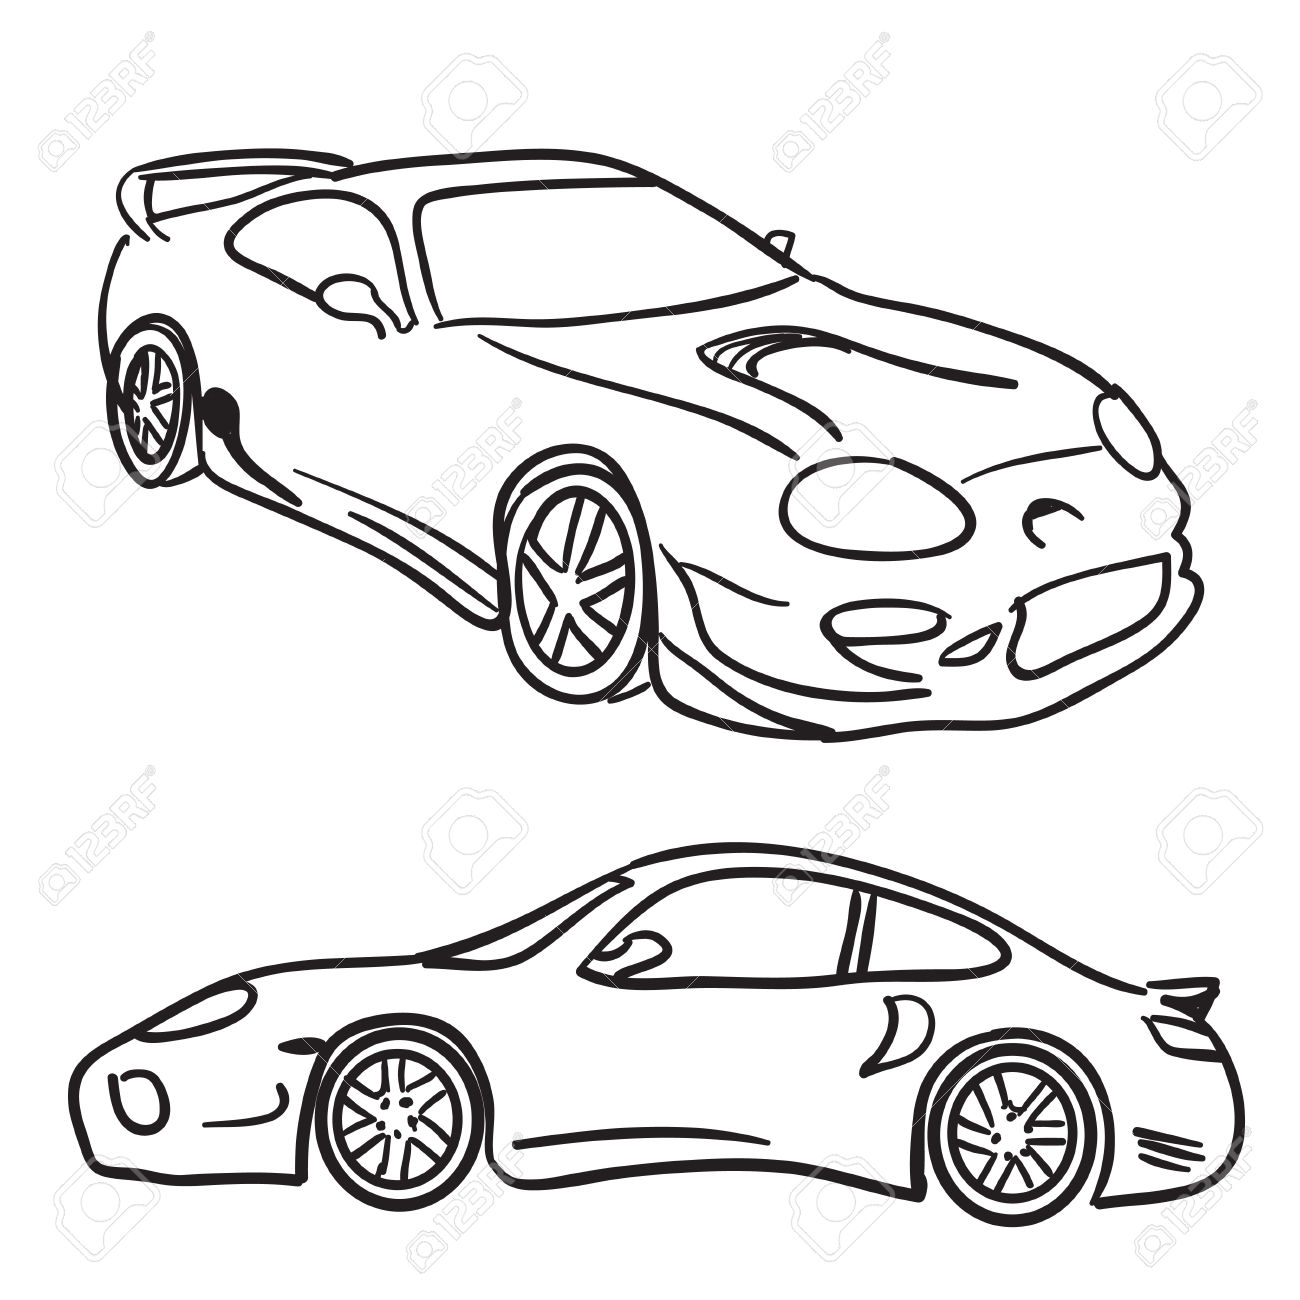 1300x1300 Vehicle Clipart Drawing